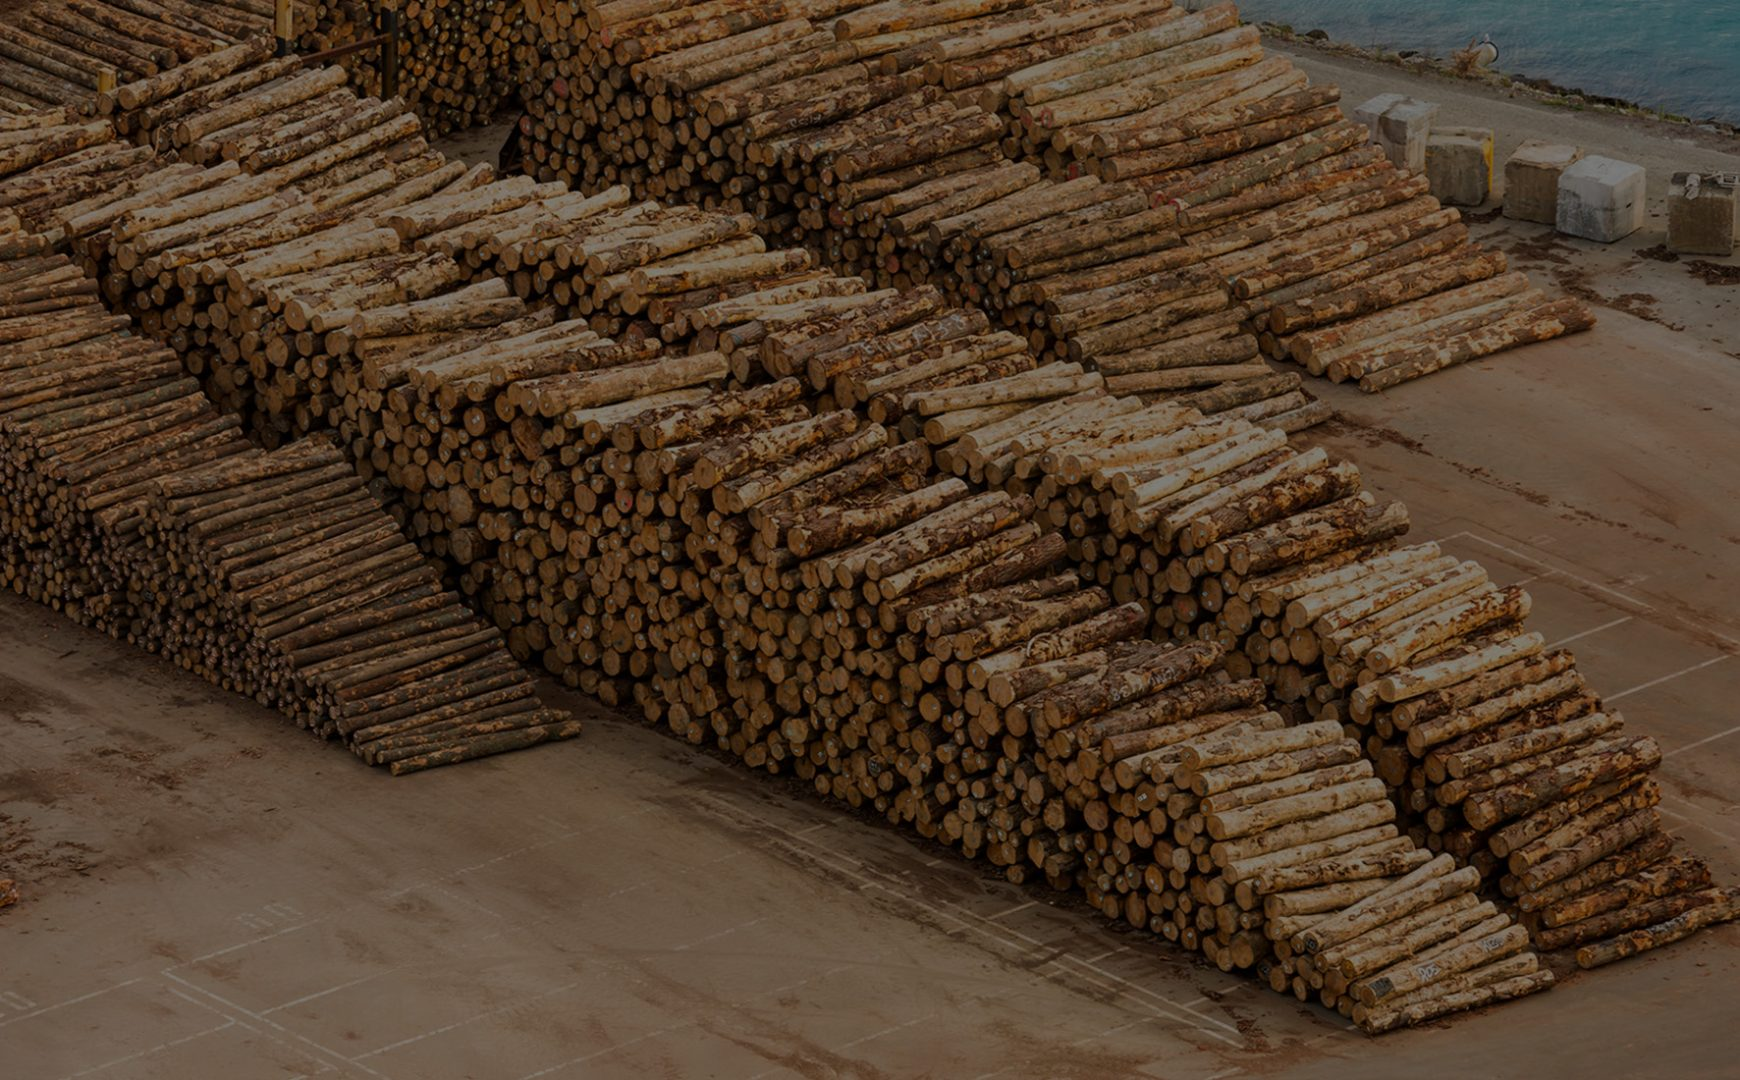 Logs stacked up ready to be shipped